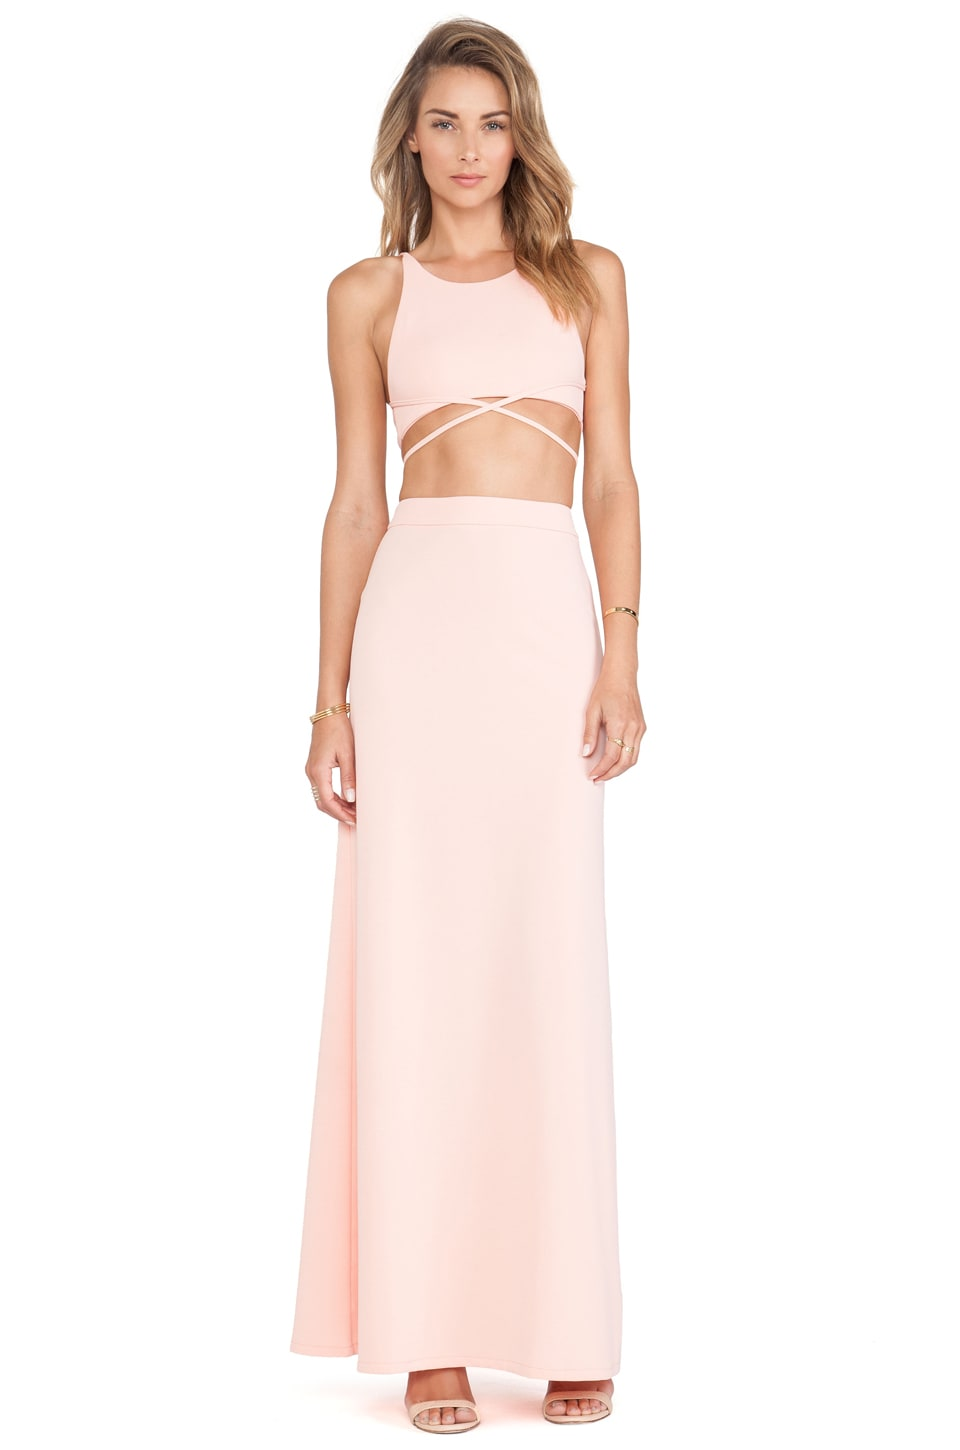 Toby Heart Ginger x Love Indie Newport Maxi Dress in Peach